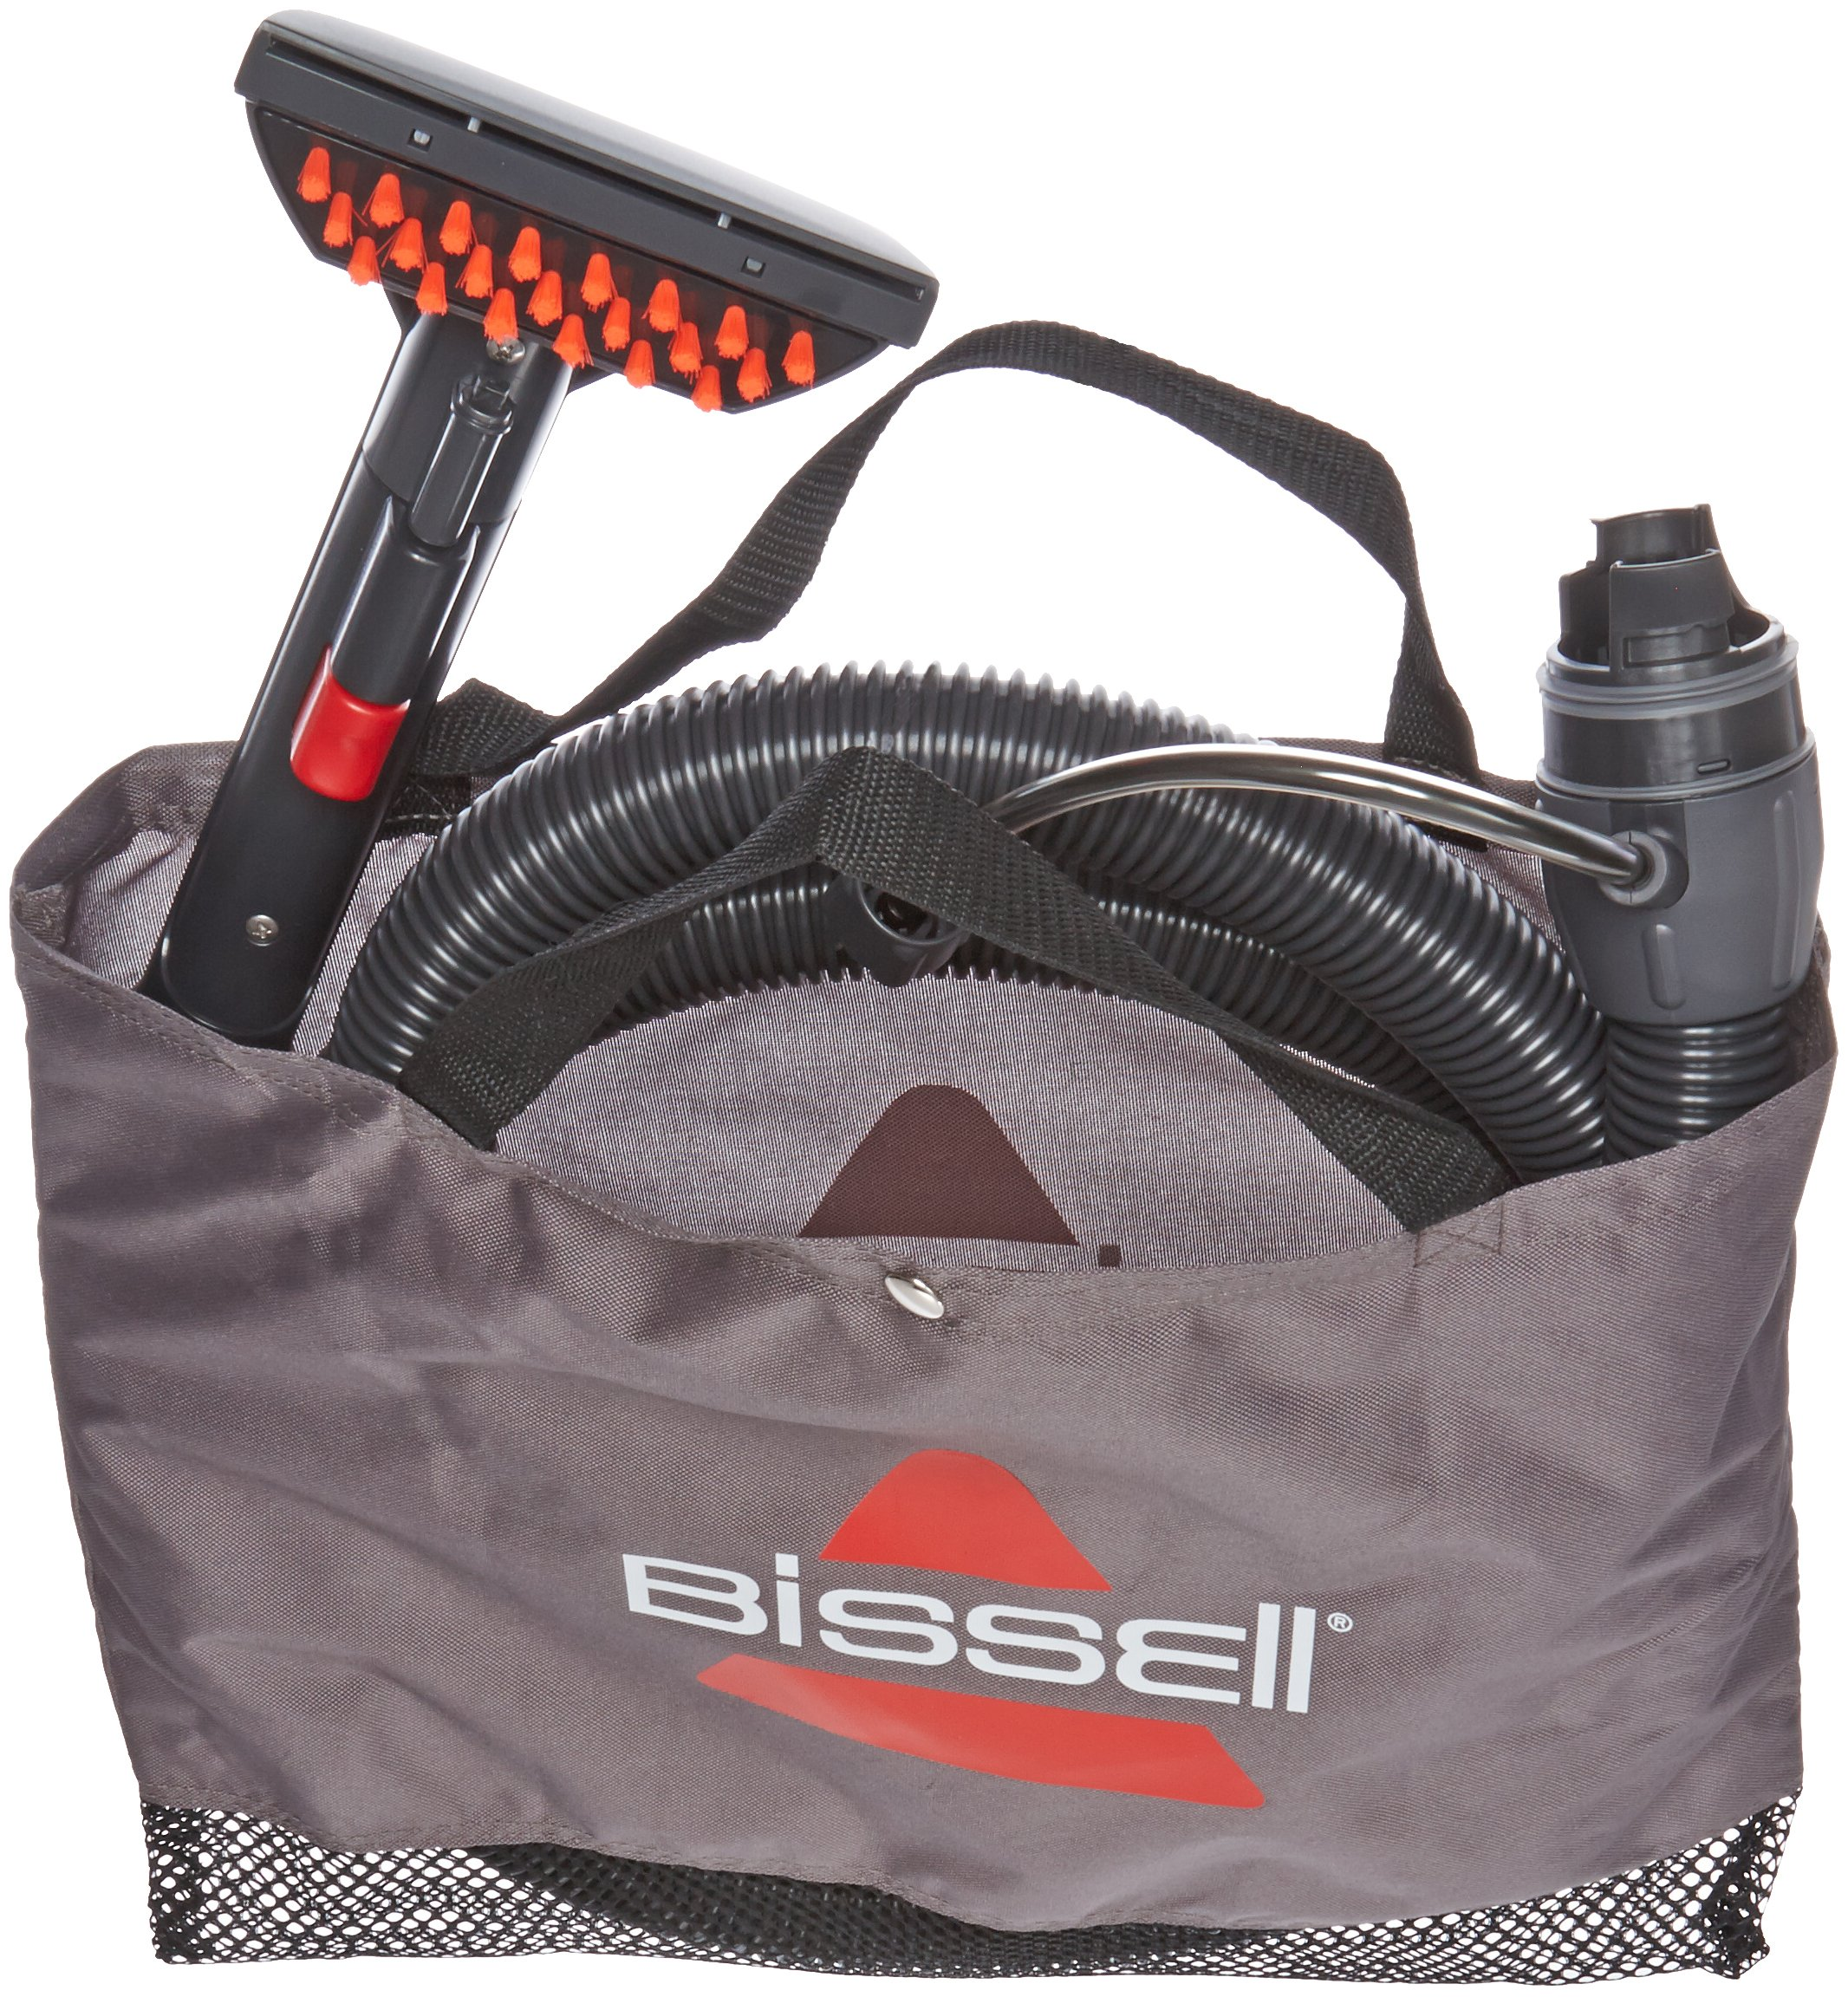 Bissell Hose with Upholstery Tl 4 10N2 Commercial Extractor by Bissell